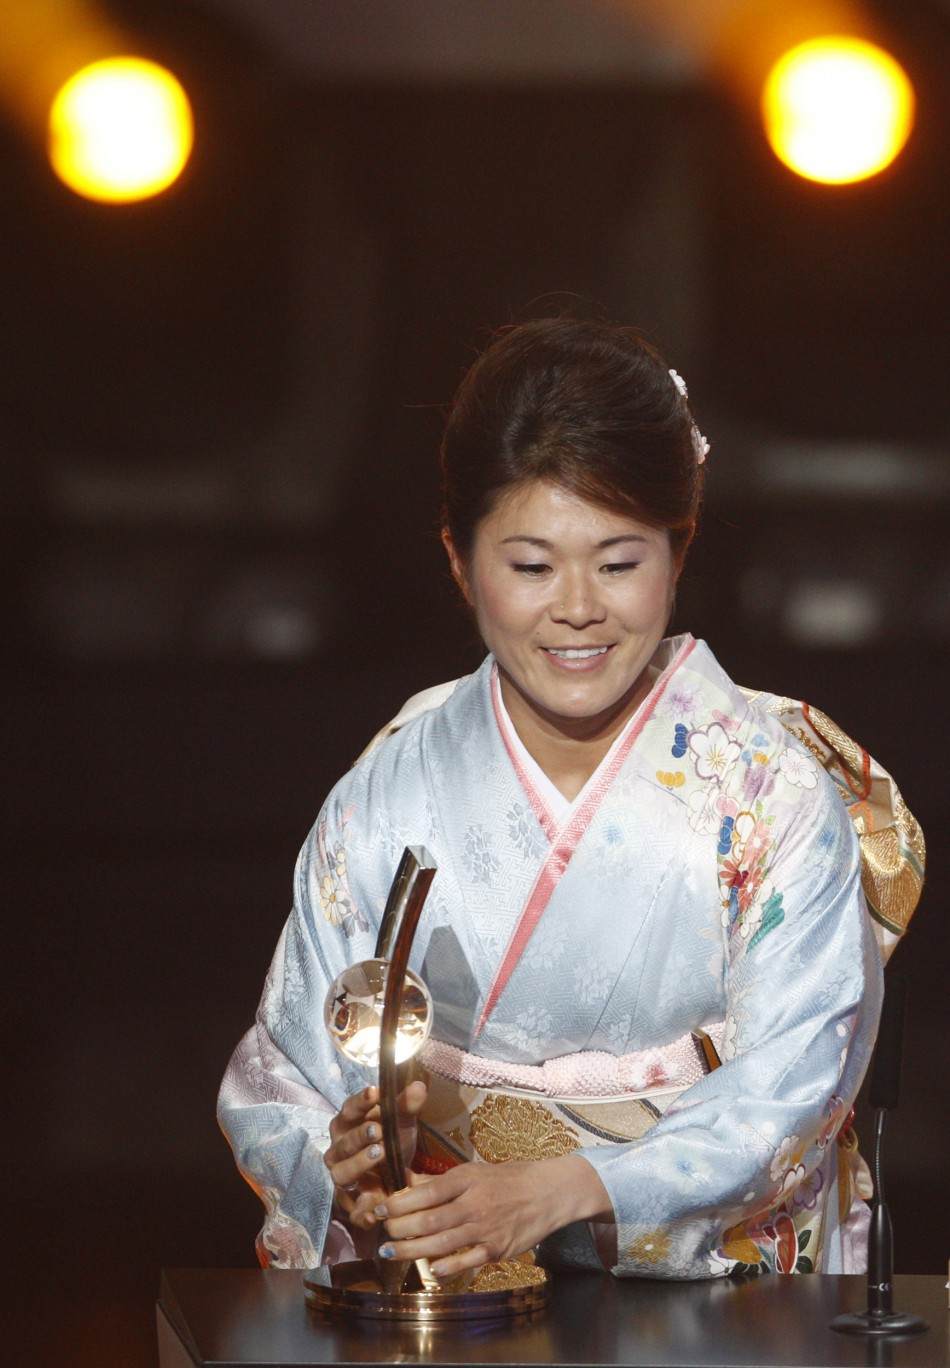 Sawa wins the Womens Player of the Year